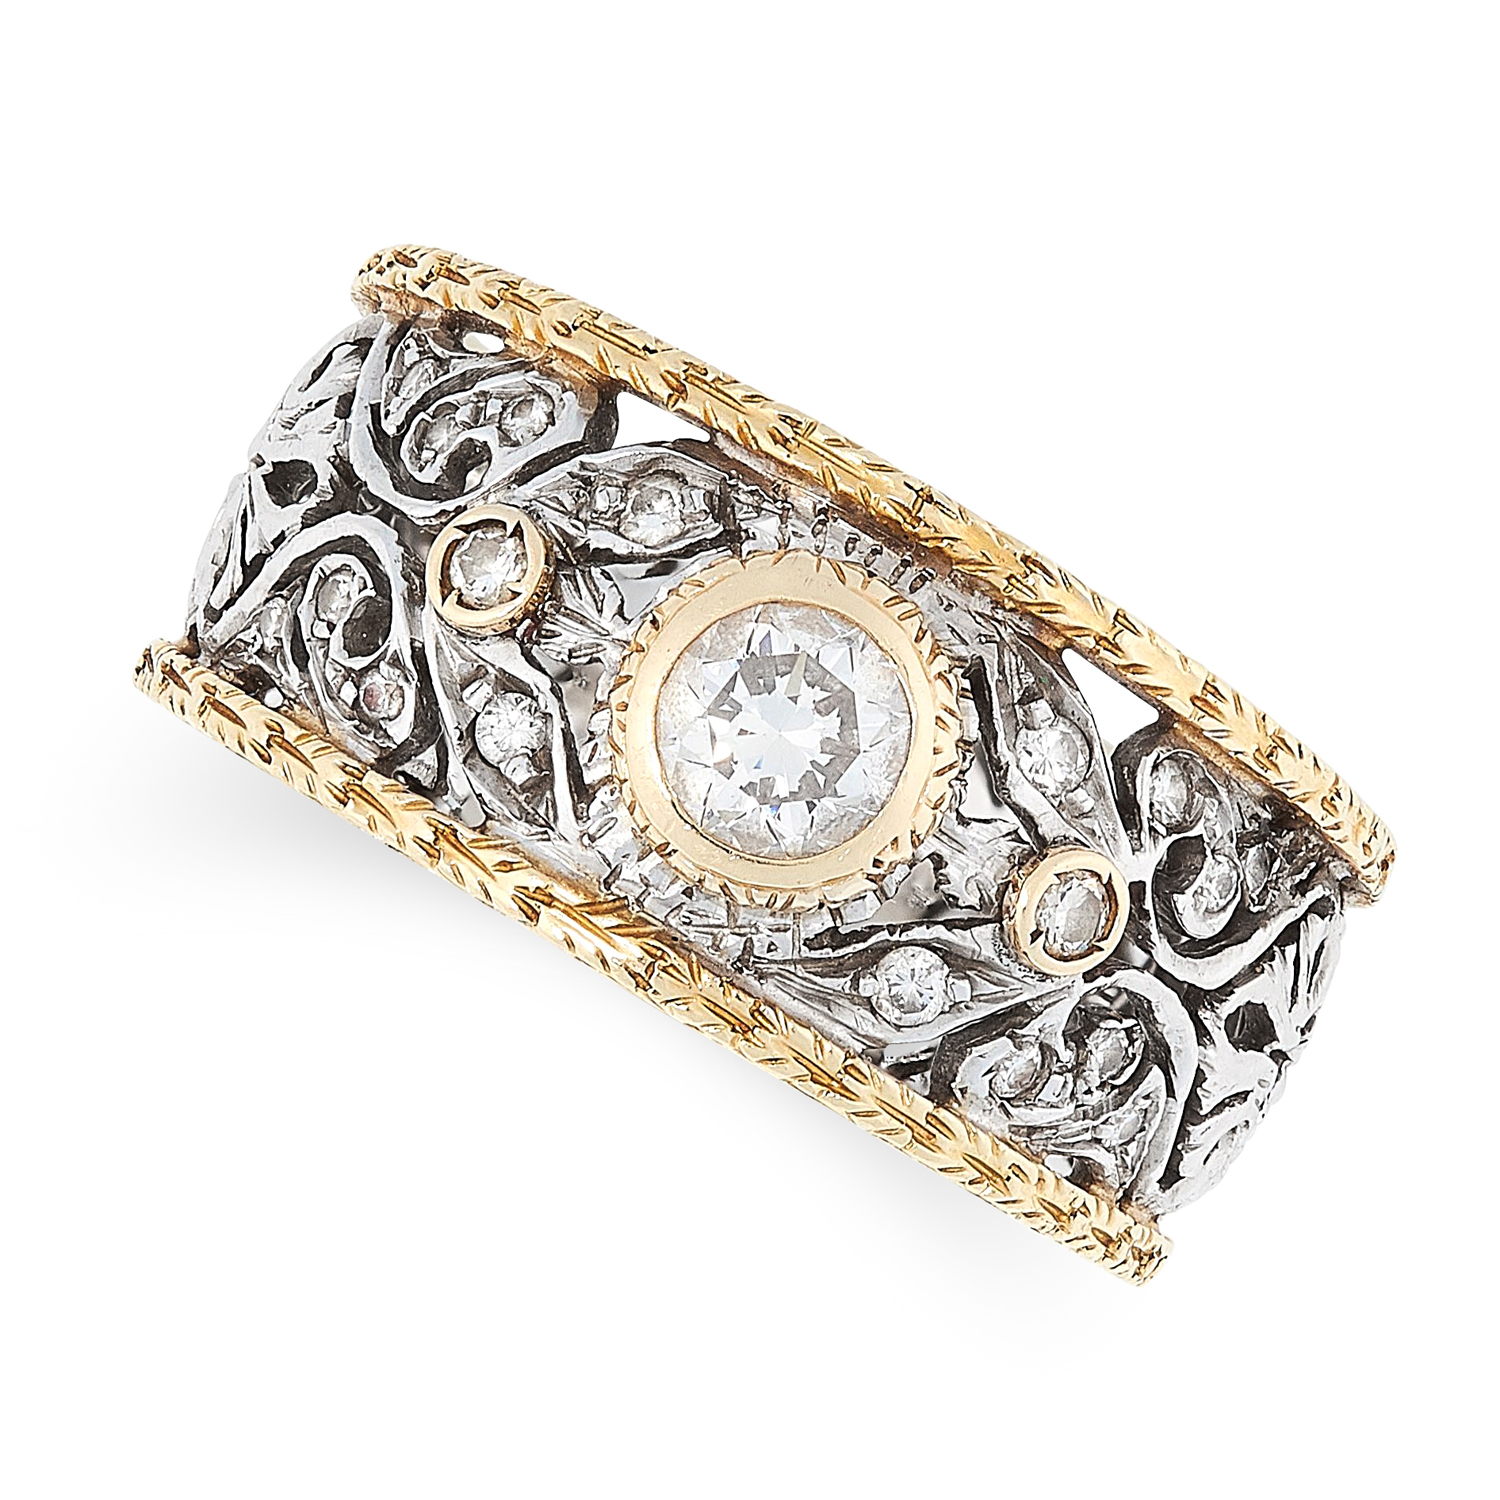 A VINTAGE DIAMOND DRESS RING, ATTR MARIO BUCCELLATI in 18ct gold, the open framework band